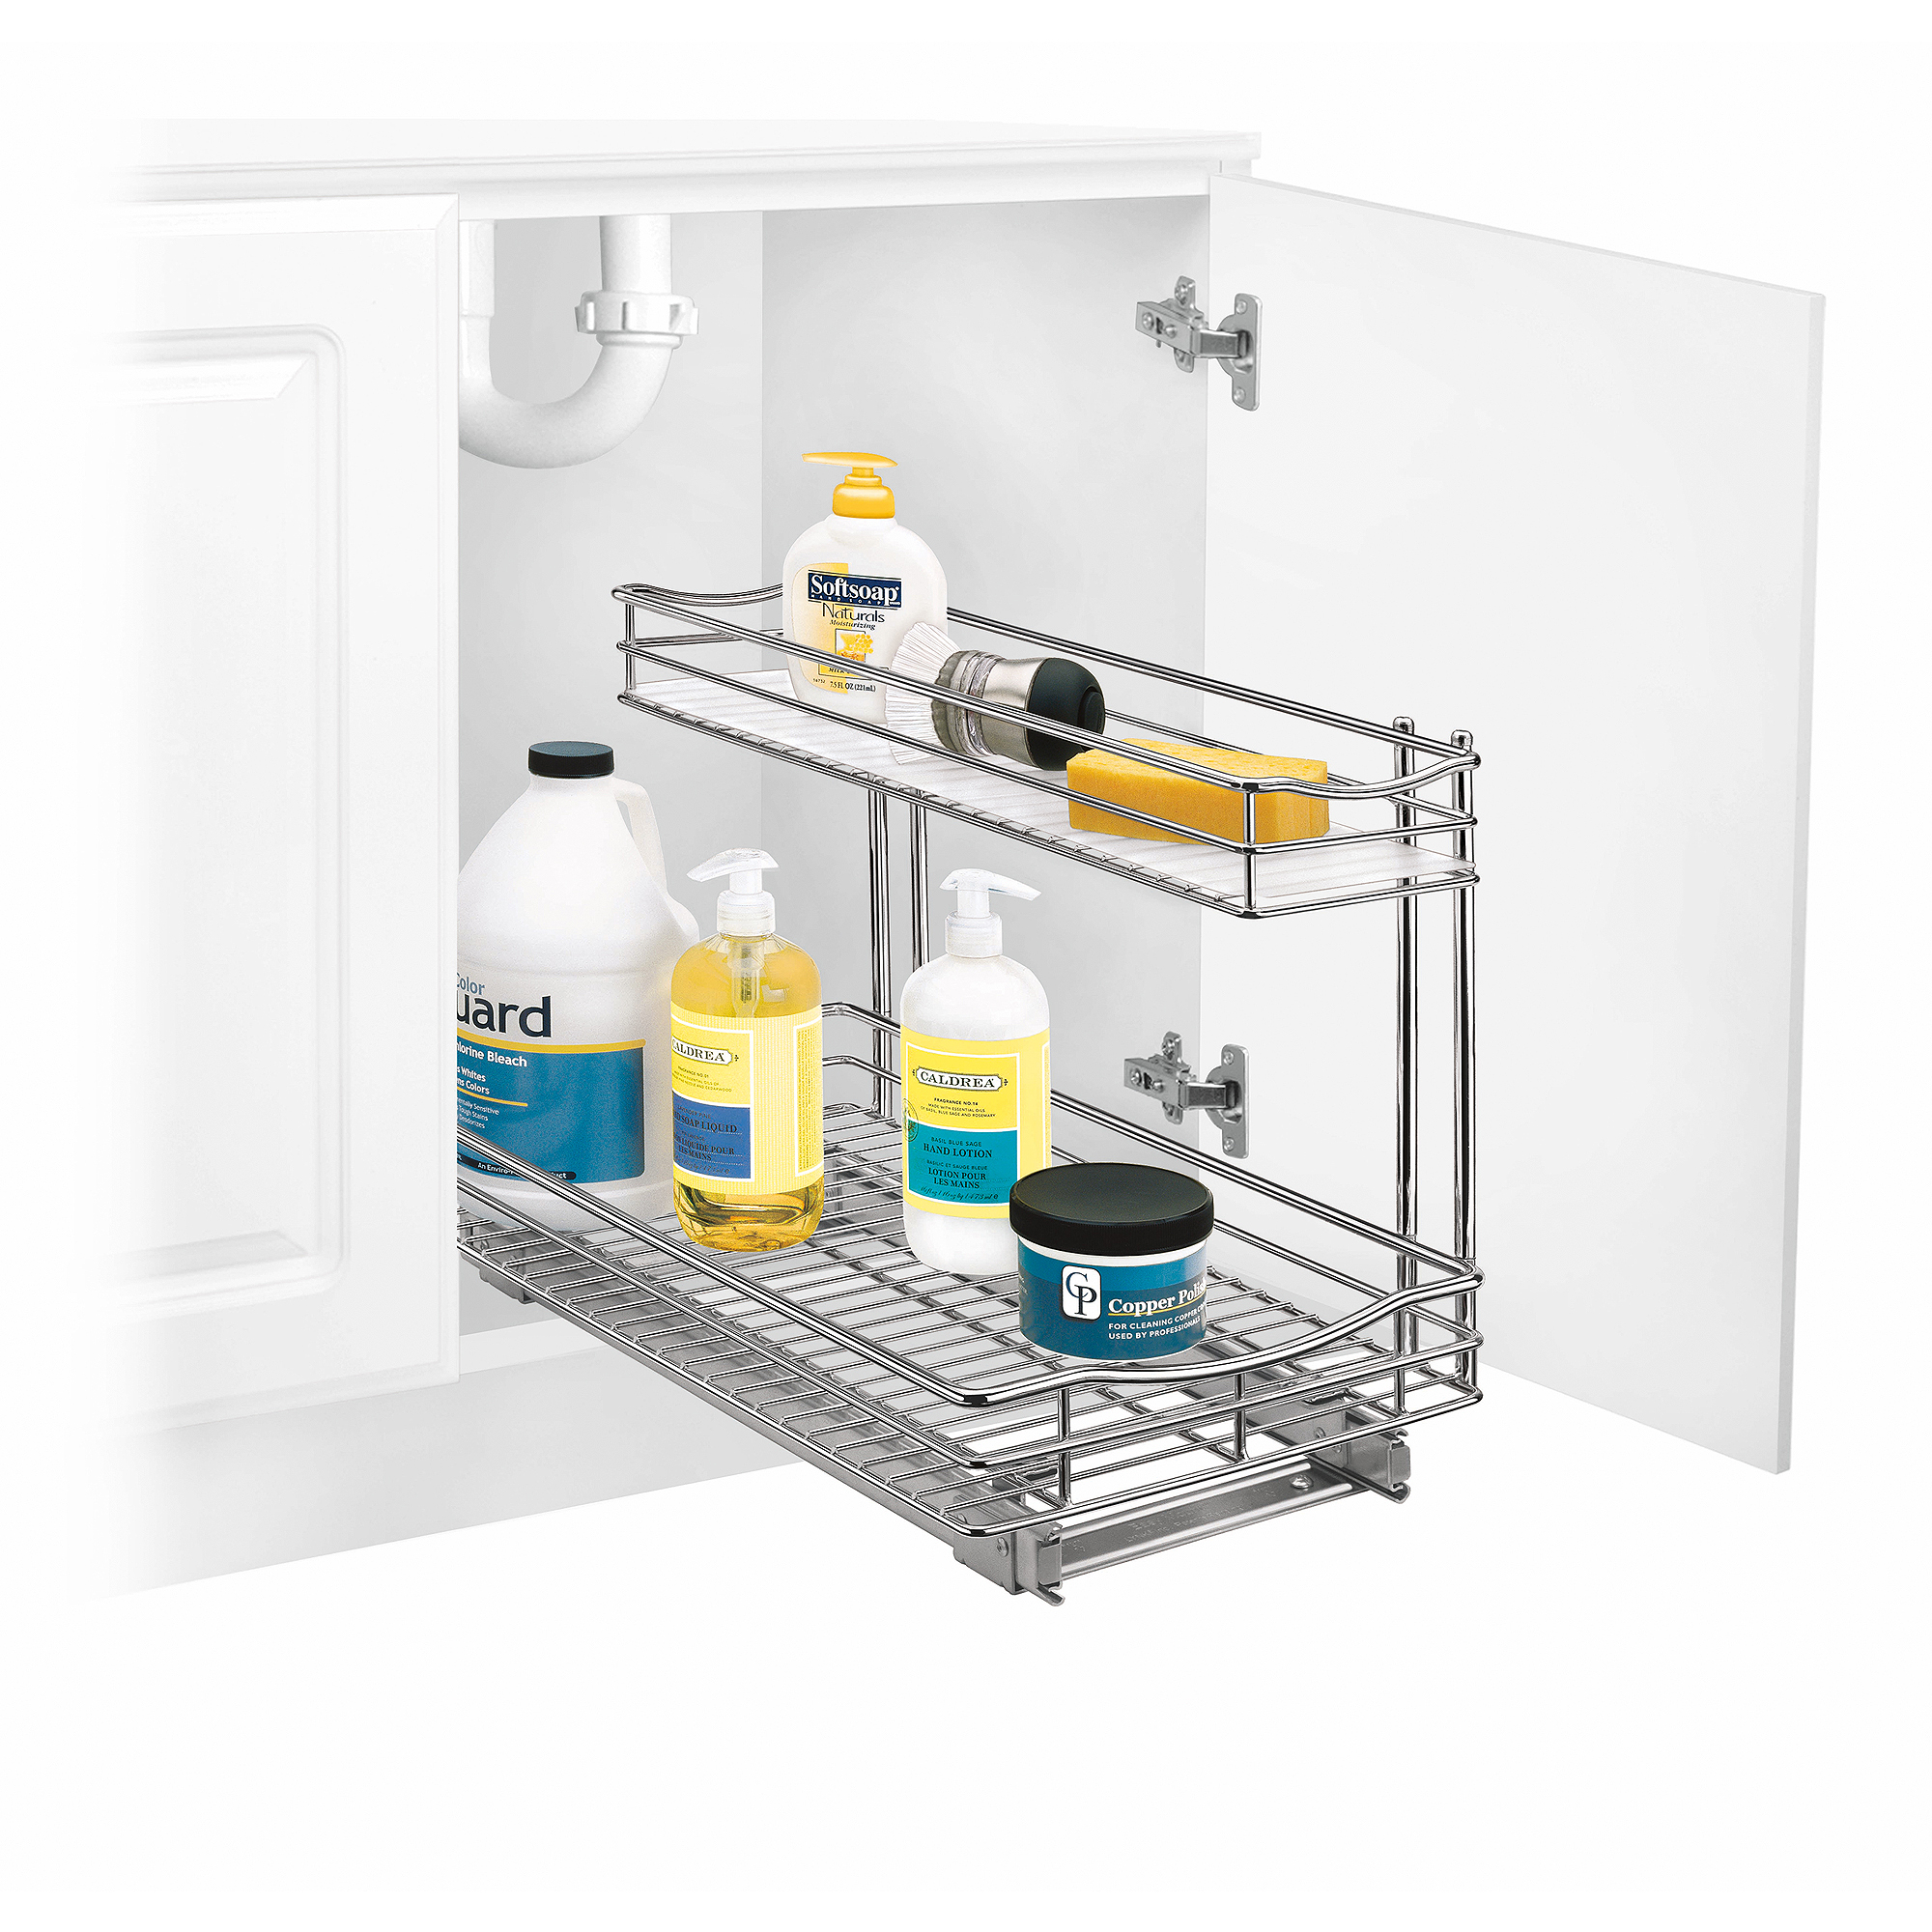 Under Kitchen Sink Storage Under Sink Storage Bathroom Under Bathroom Sink Organizer Despite